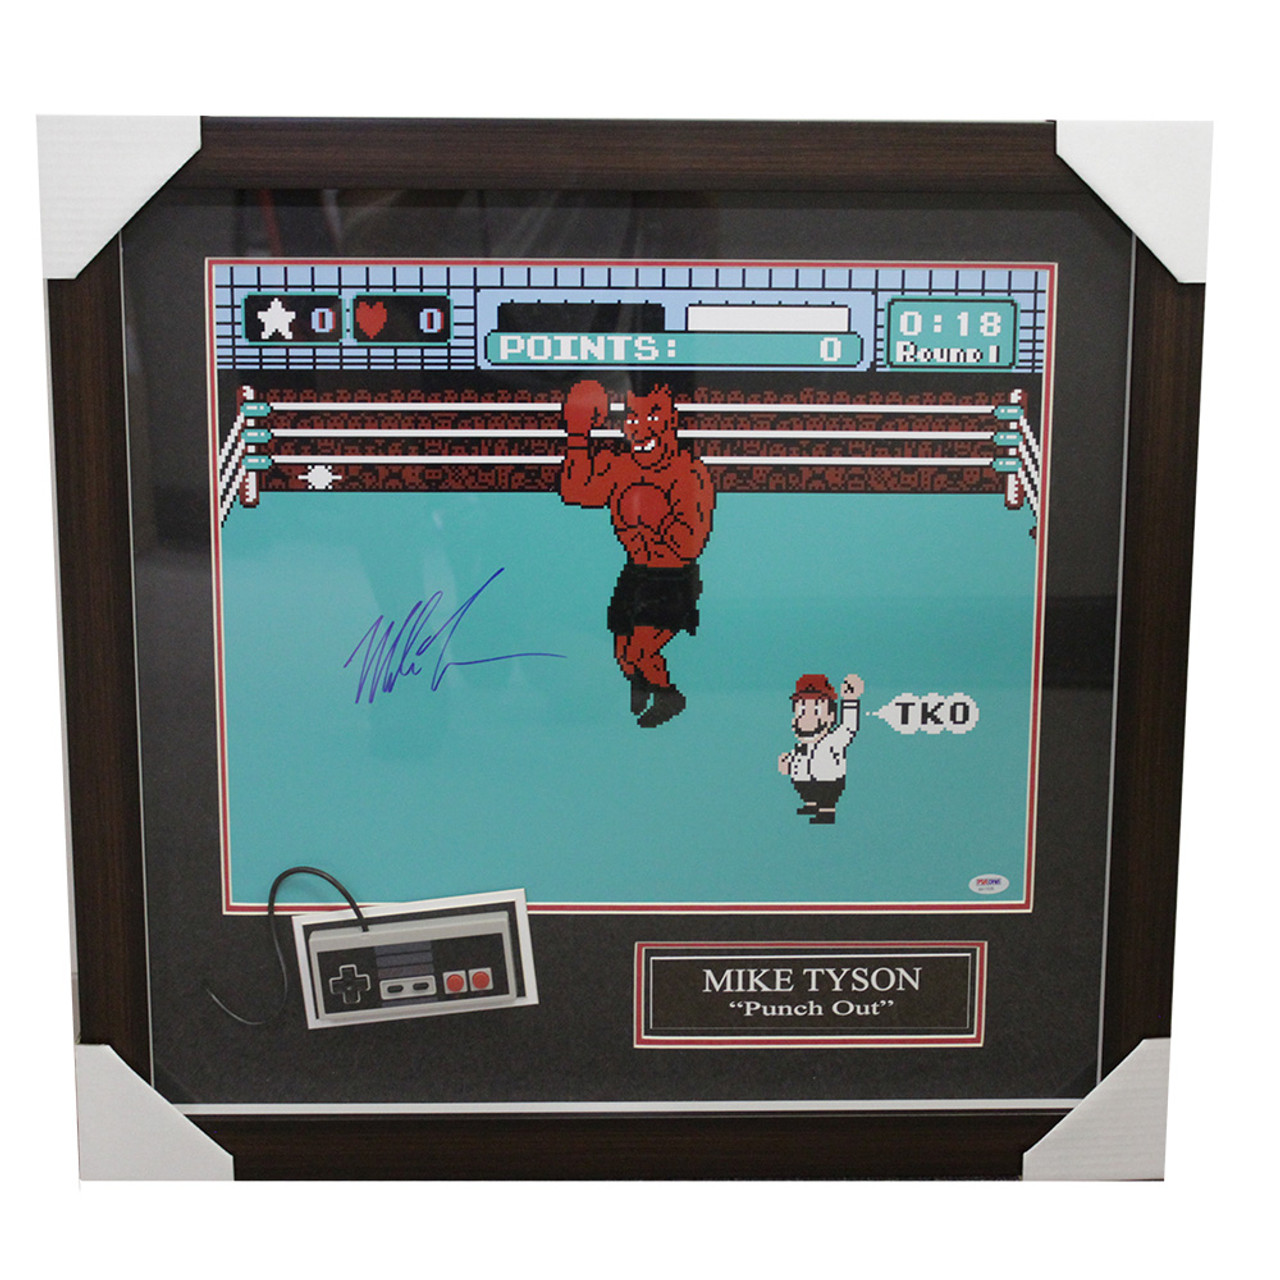 a026dd47d Mike Tyson Punch-out Framed Autographed Signed Game Image with ...